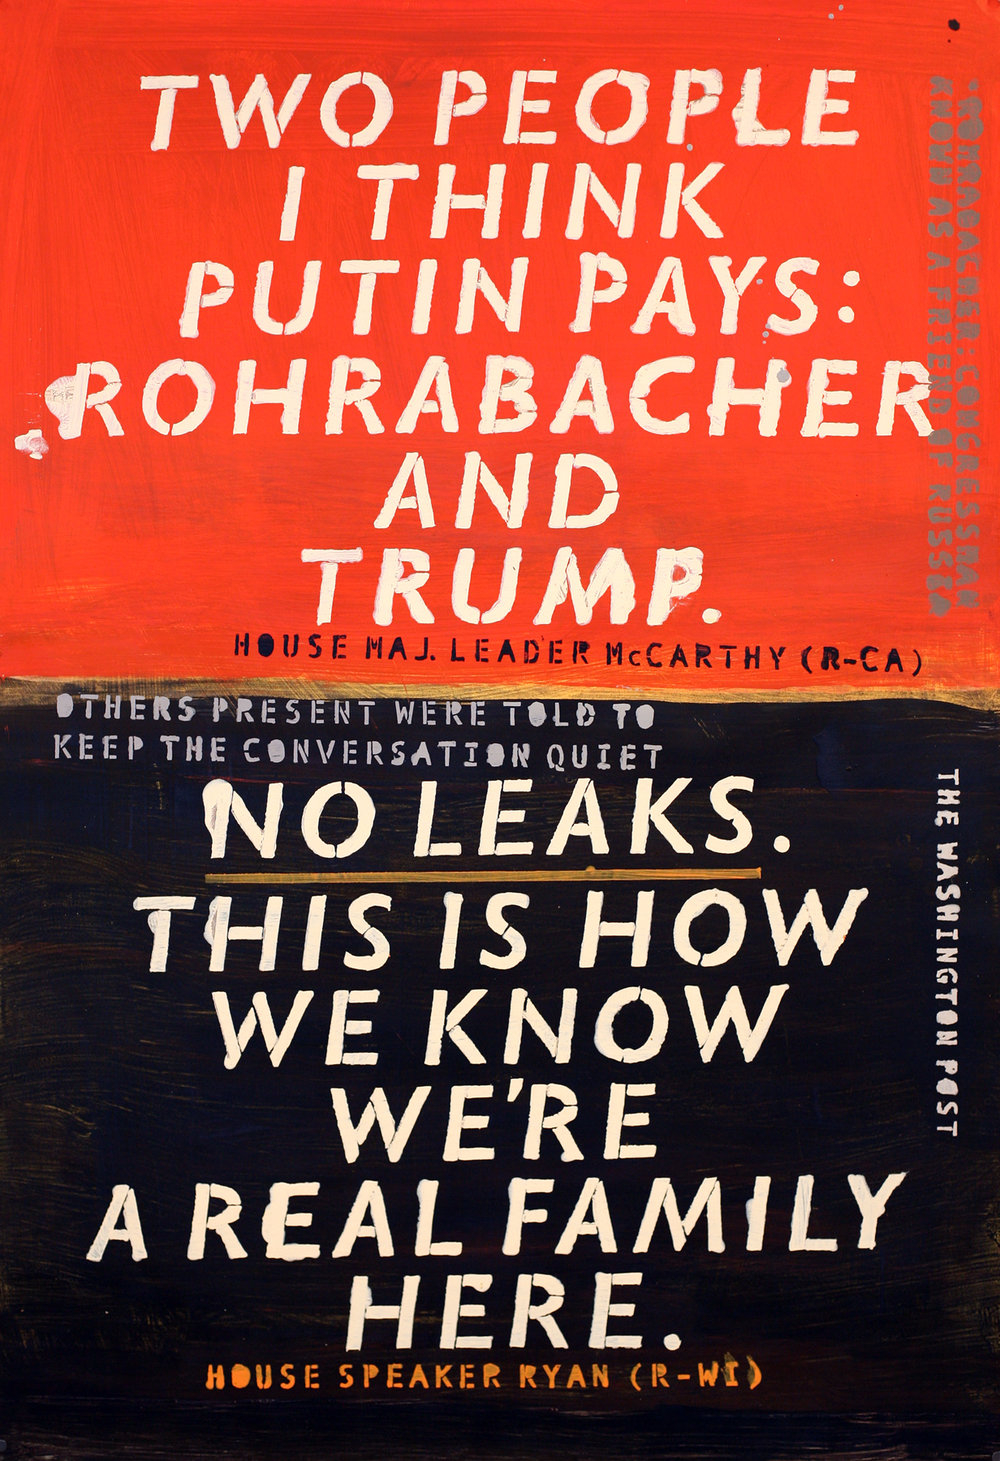 Putin, Trump, and Rohrabacher